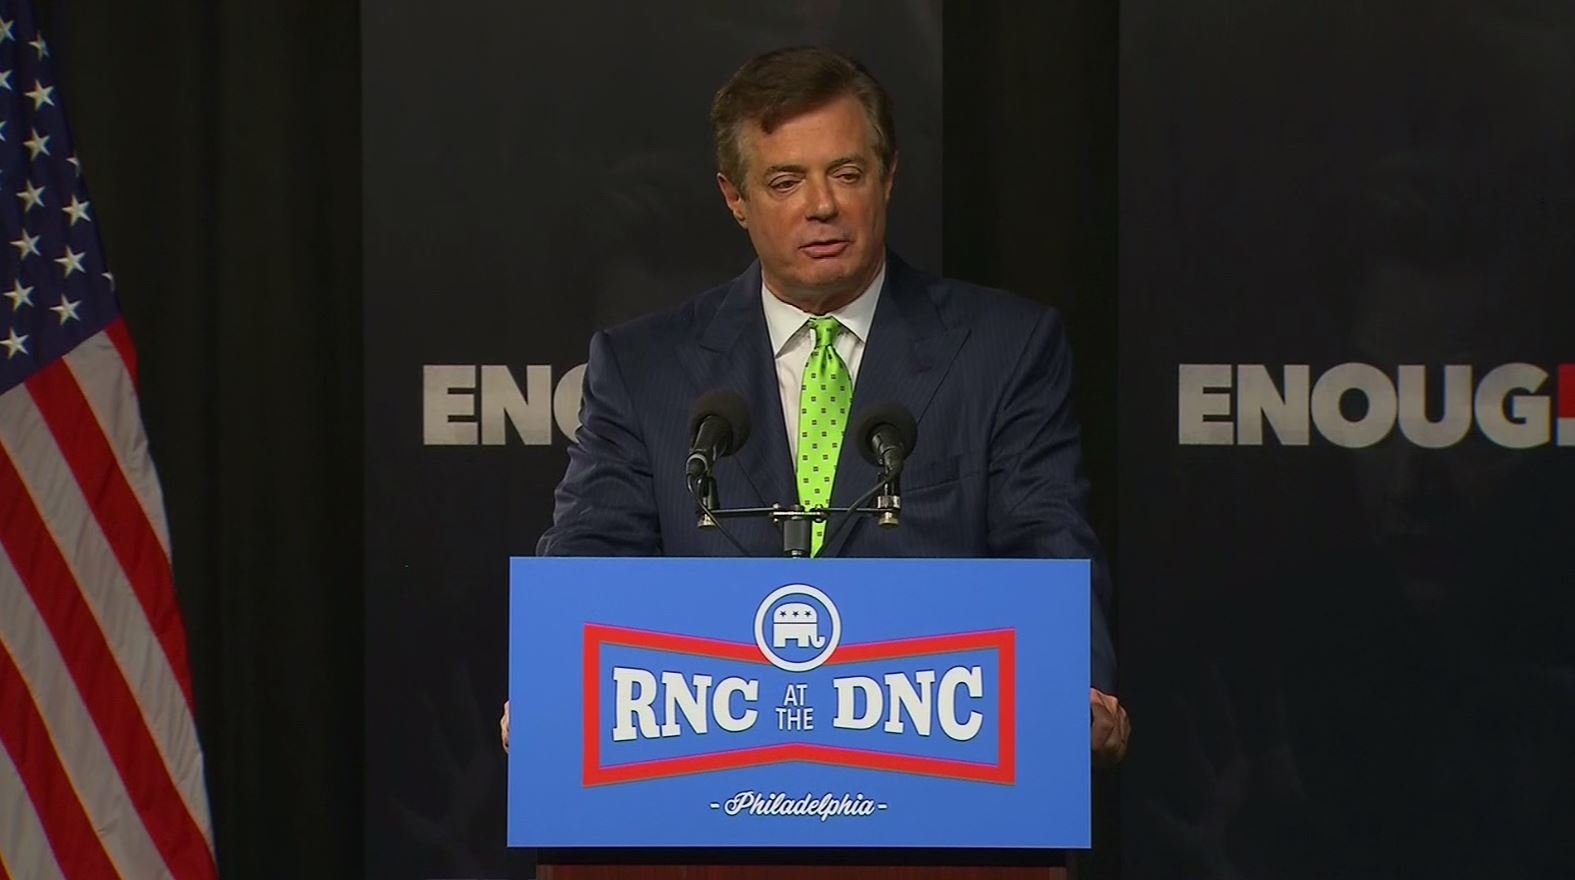 The Department of Justice has asked that a judge dismiss the lawsuit former Trump campaign chairman Paul Manafort brought against Special Counsel Robert Mueller last month, in which Manafort accused Mueller of overreach. (Source: CNN/Pool)